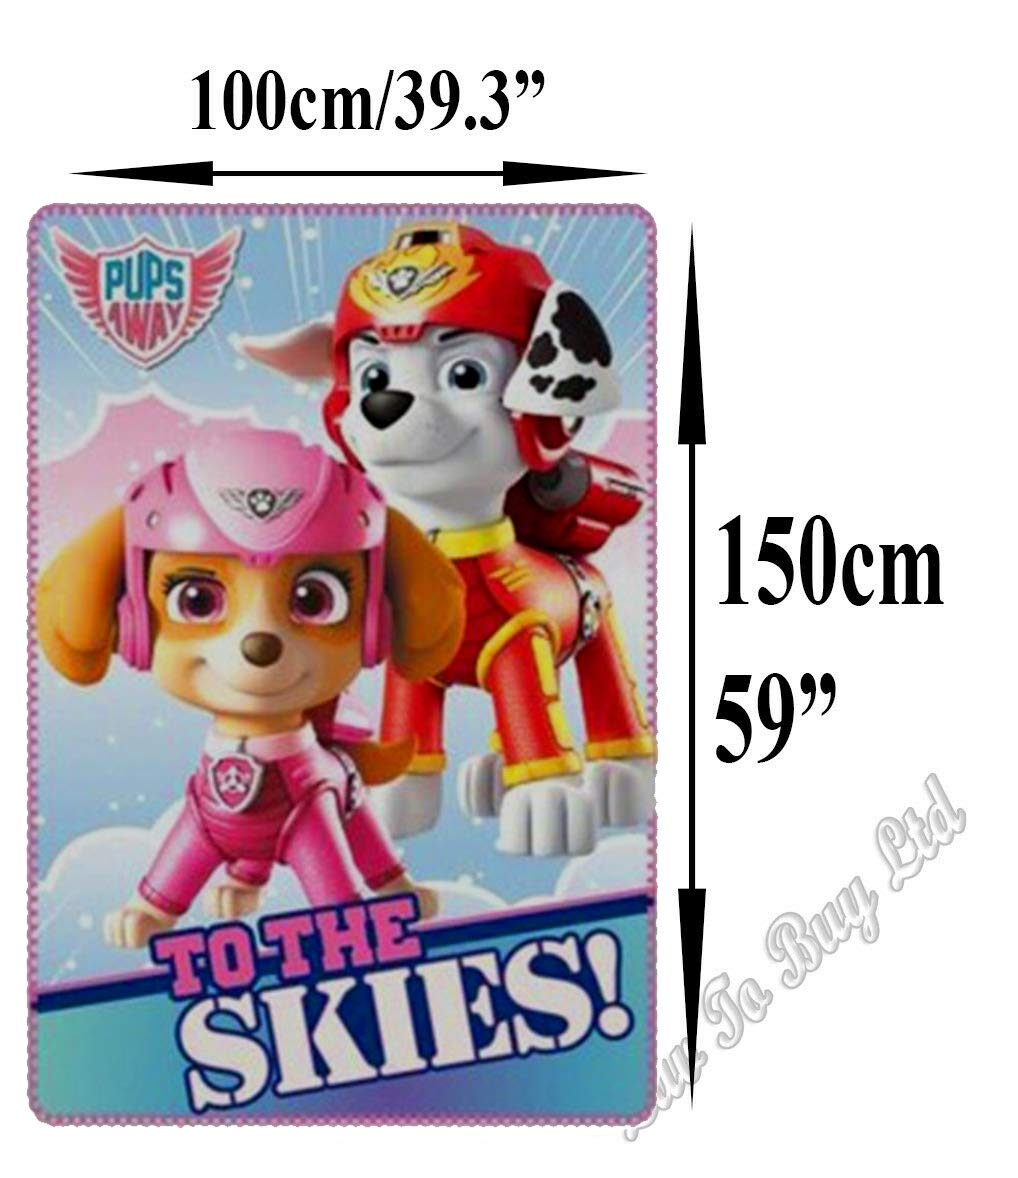 59. x 39.3 Paw Patrol to Skies Blanket Soft Touch Fluffy Coral Fleece,100/×150cm Official Licenced.